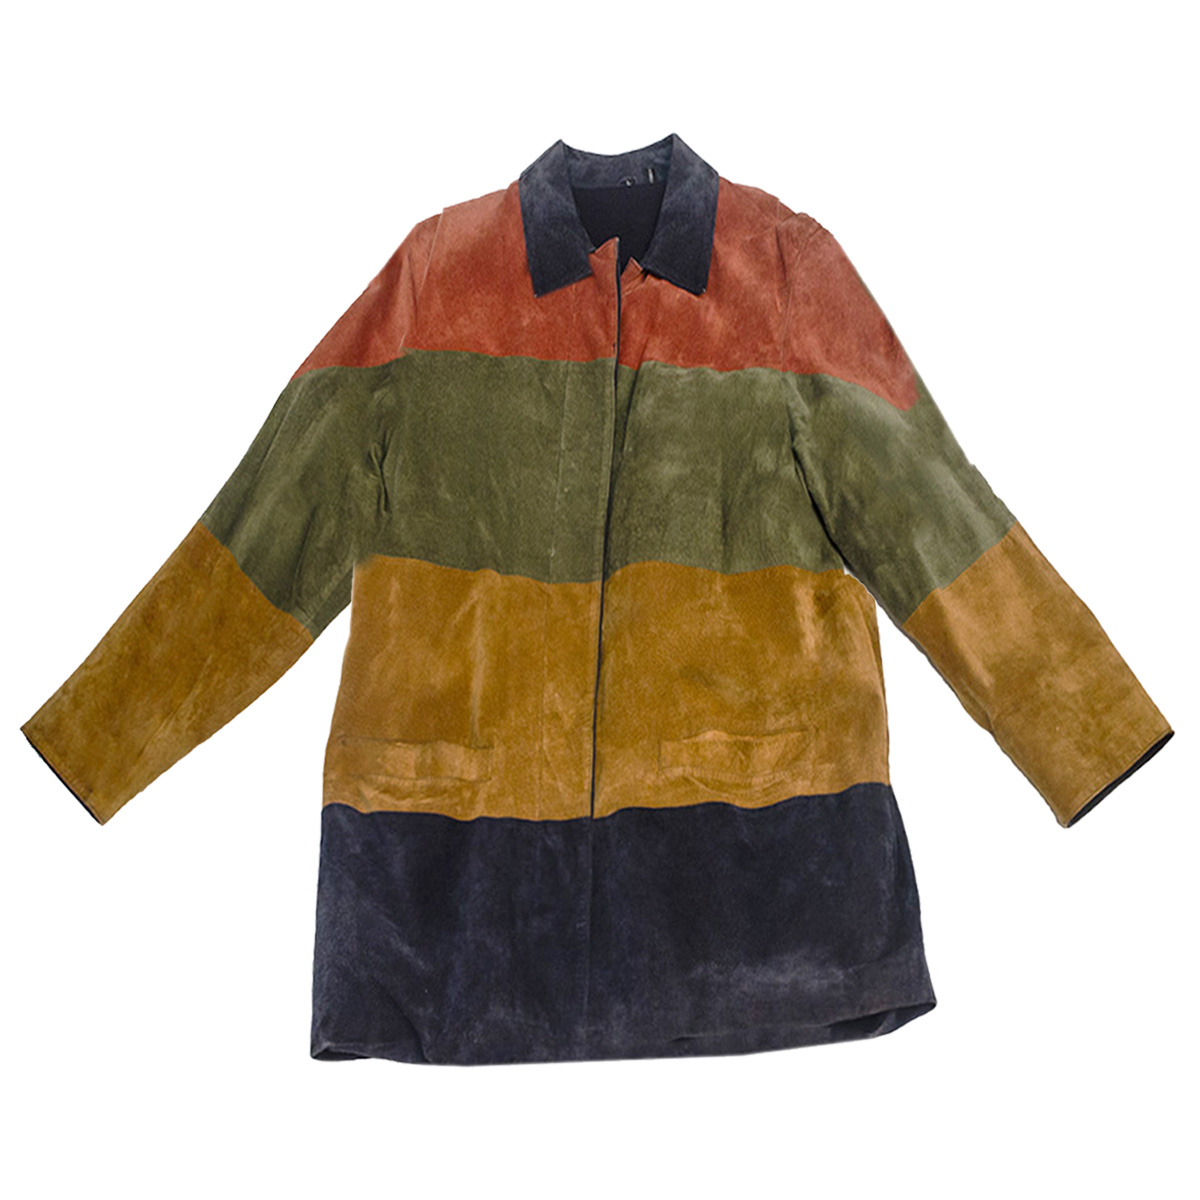 Striped Suede Jacket Blue, red, green, yellow copy